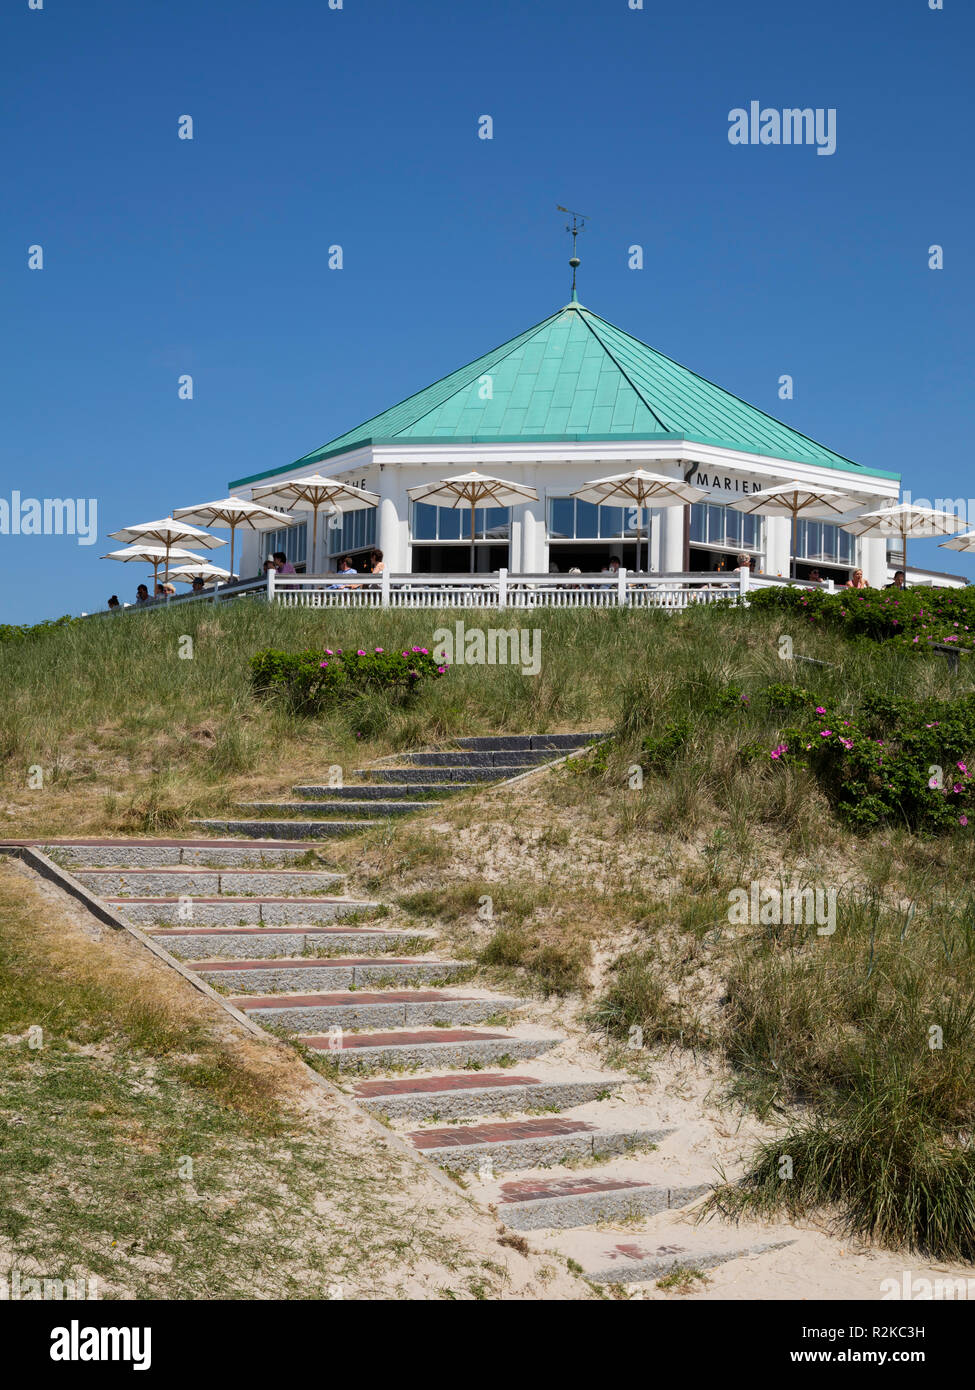 Traditional pub Marienhöhe, Norderney, East Frisian island, Lower saxony, Germany, Europe Stock Photo